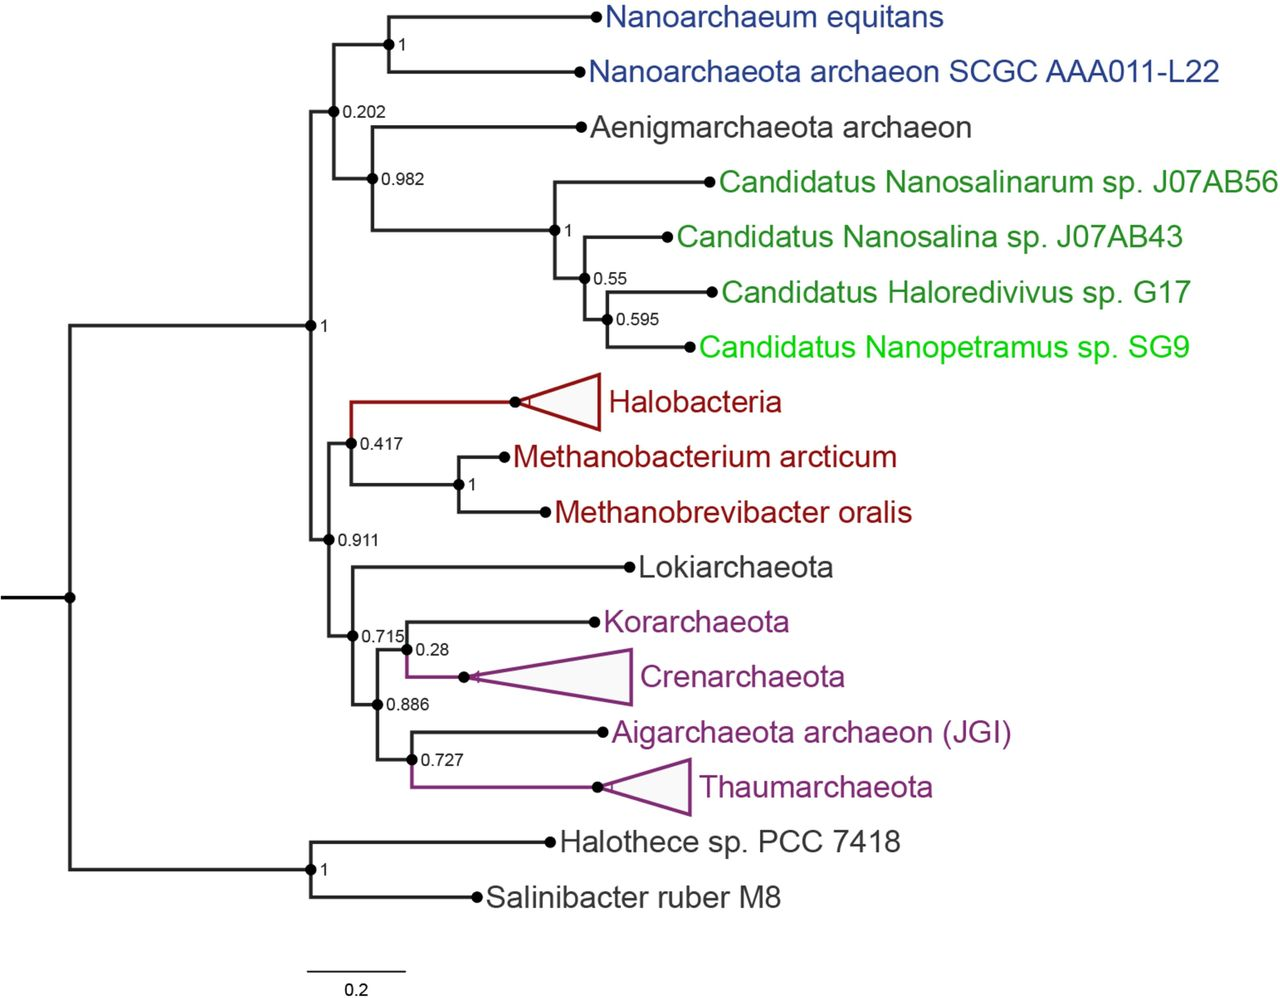 Functional analysis of the archaea, bacteria, and viruses